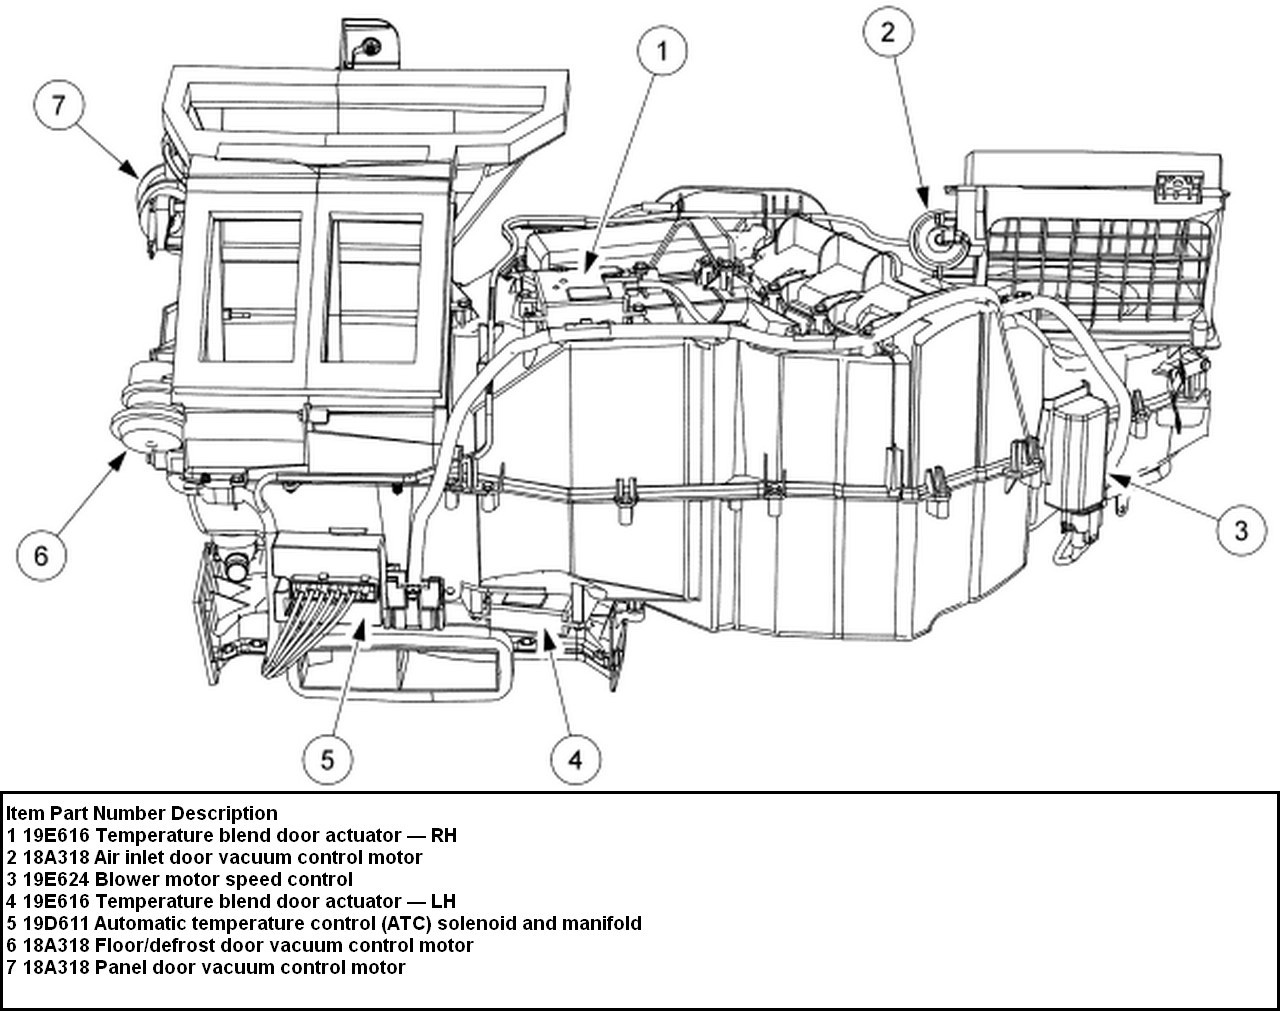 hight resolution of 2001 ford expedition engine diagram back trusted wiring diagram rh dafpods co